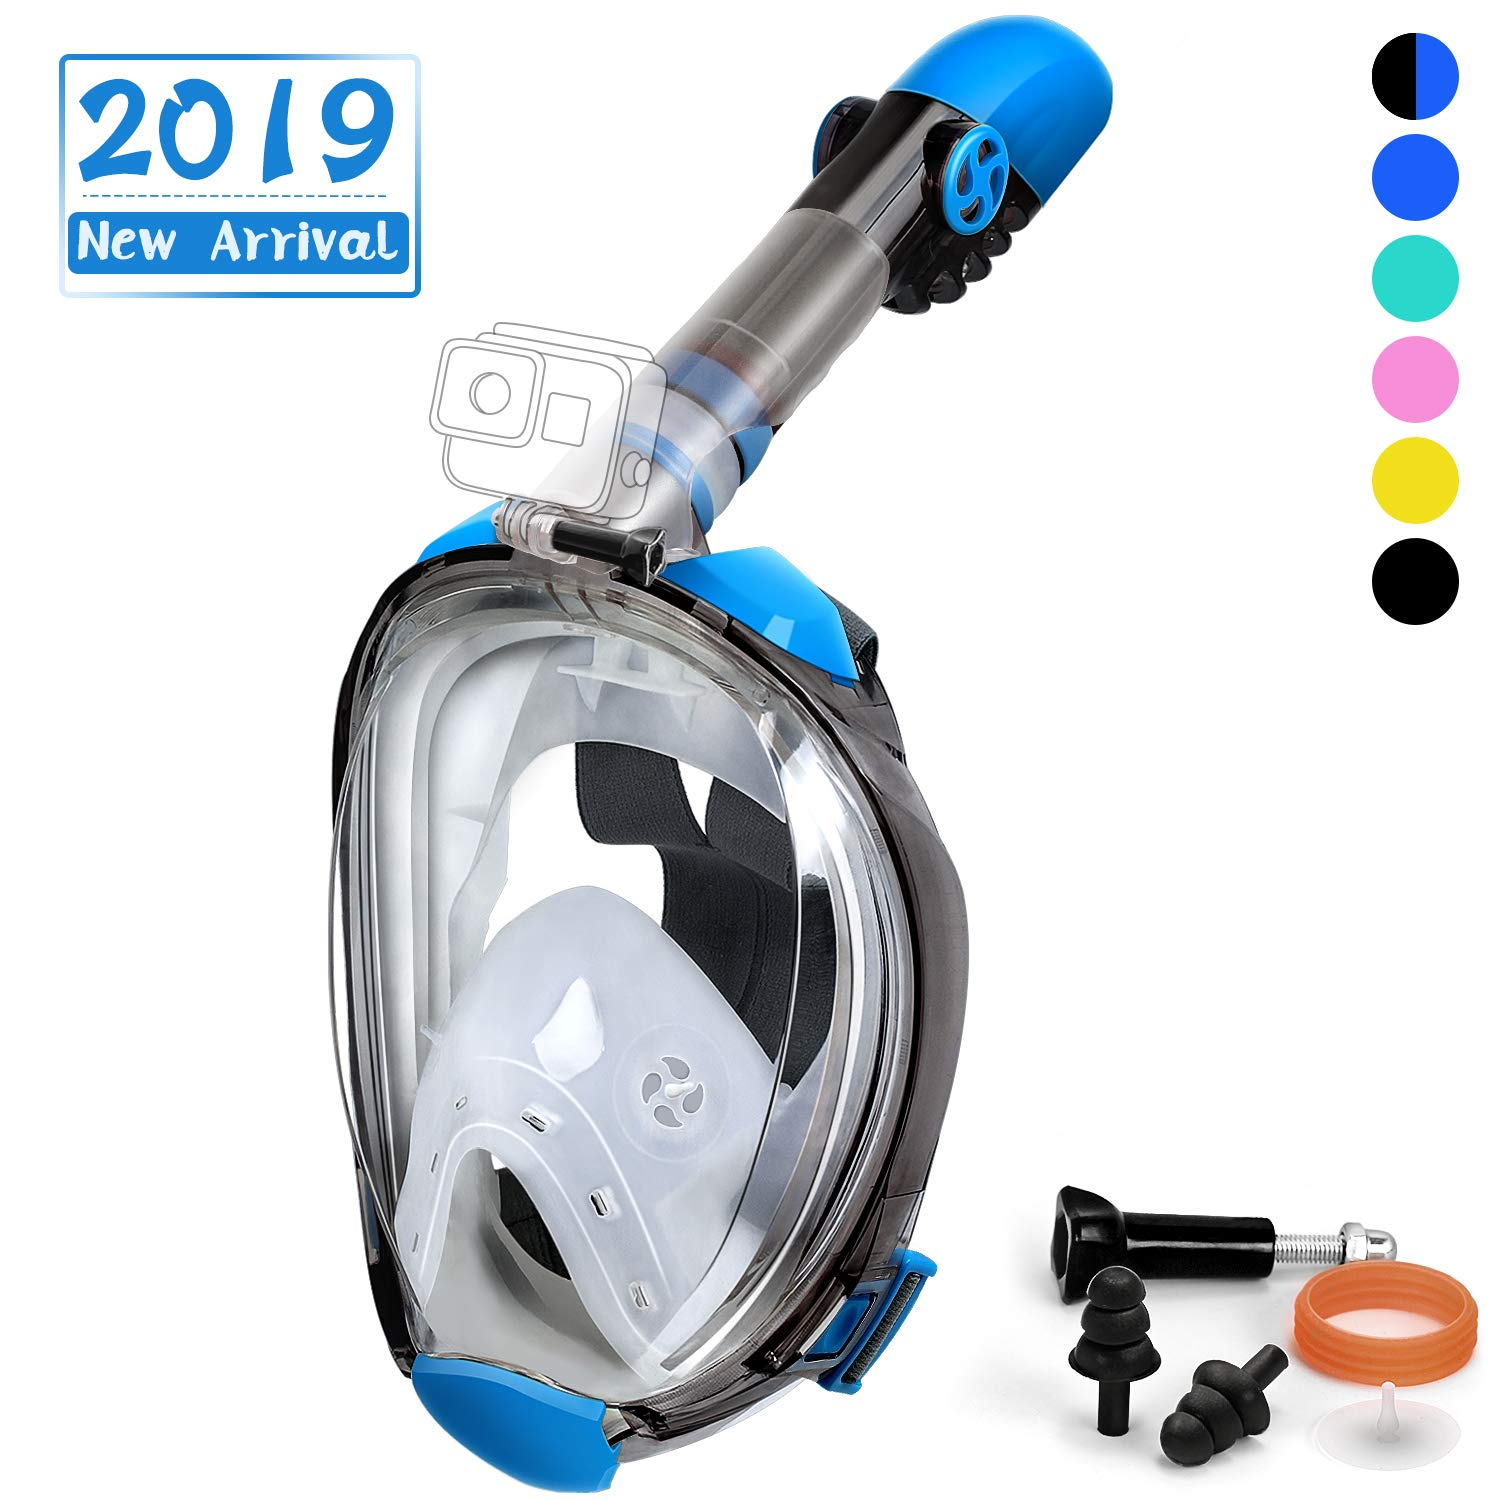 OUSPT Full Face Snorkel Mask, Snorkeling Mask with Detachable Camera Mount, Seaview 180° Upgraded Dive Mask with Newest Breathing System, Dry Top Set Anti-Fog Anti-Leak for Adult Youth(Blue-2, S/M)